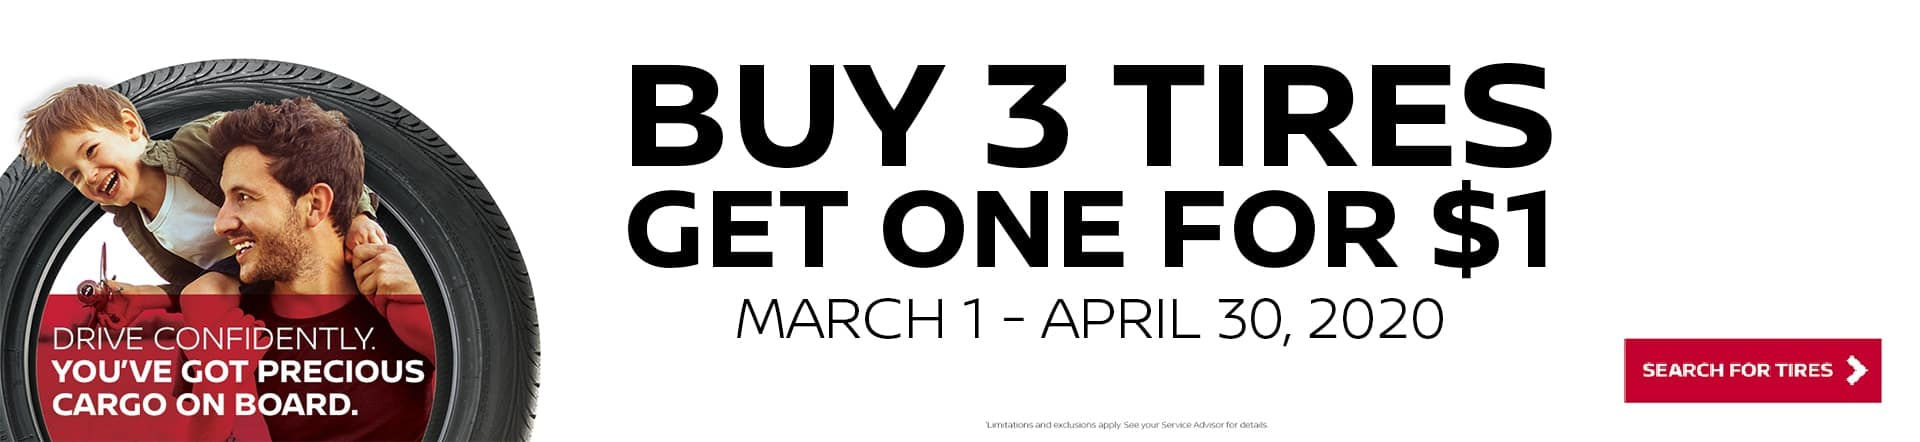 Nissan Buy 3 Tires Get One For $1 Offer